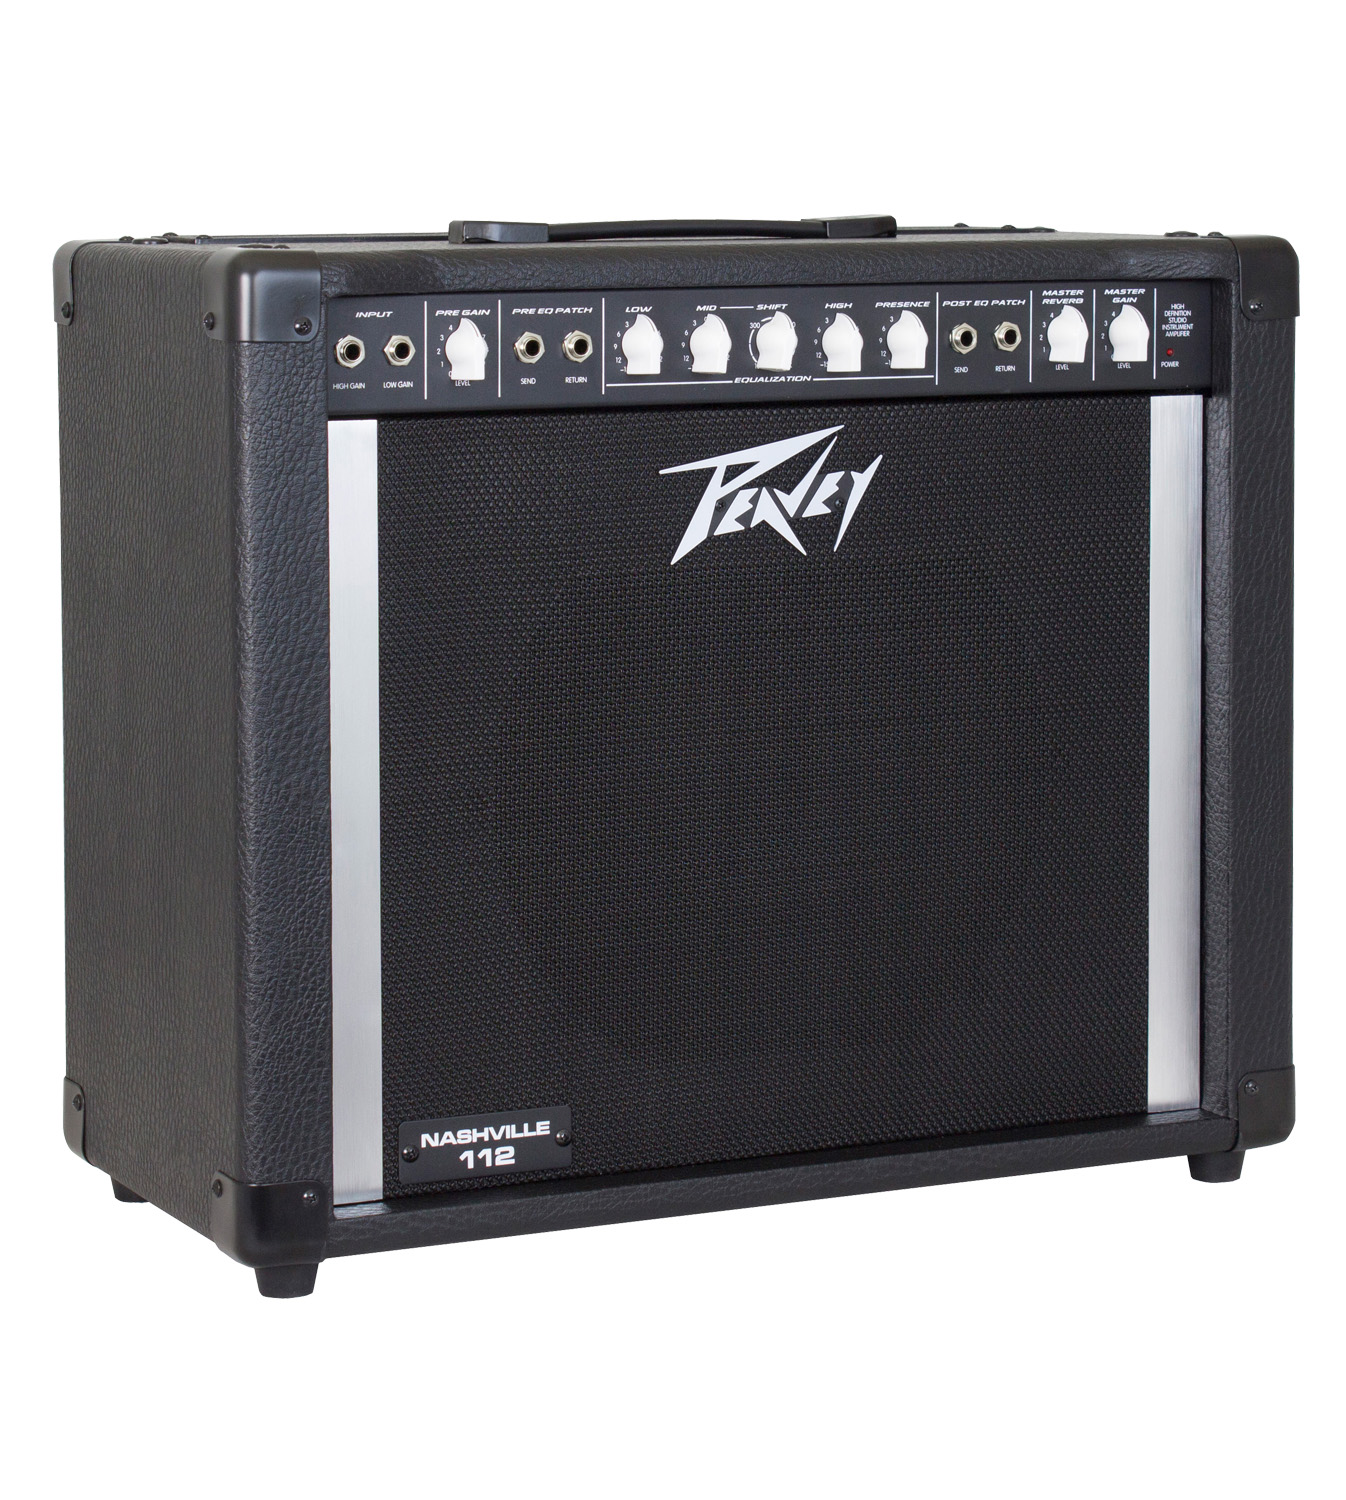 nashville 112 80 watt 1x12 pedal steel guitar amp peavey. Black Bedroom Furniture Sets. Home Design Ideas